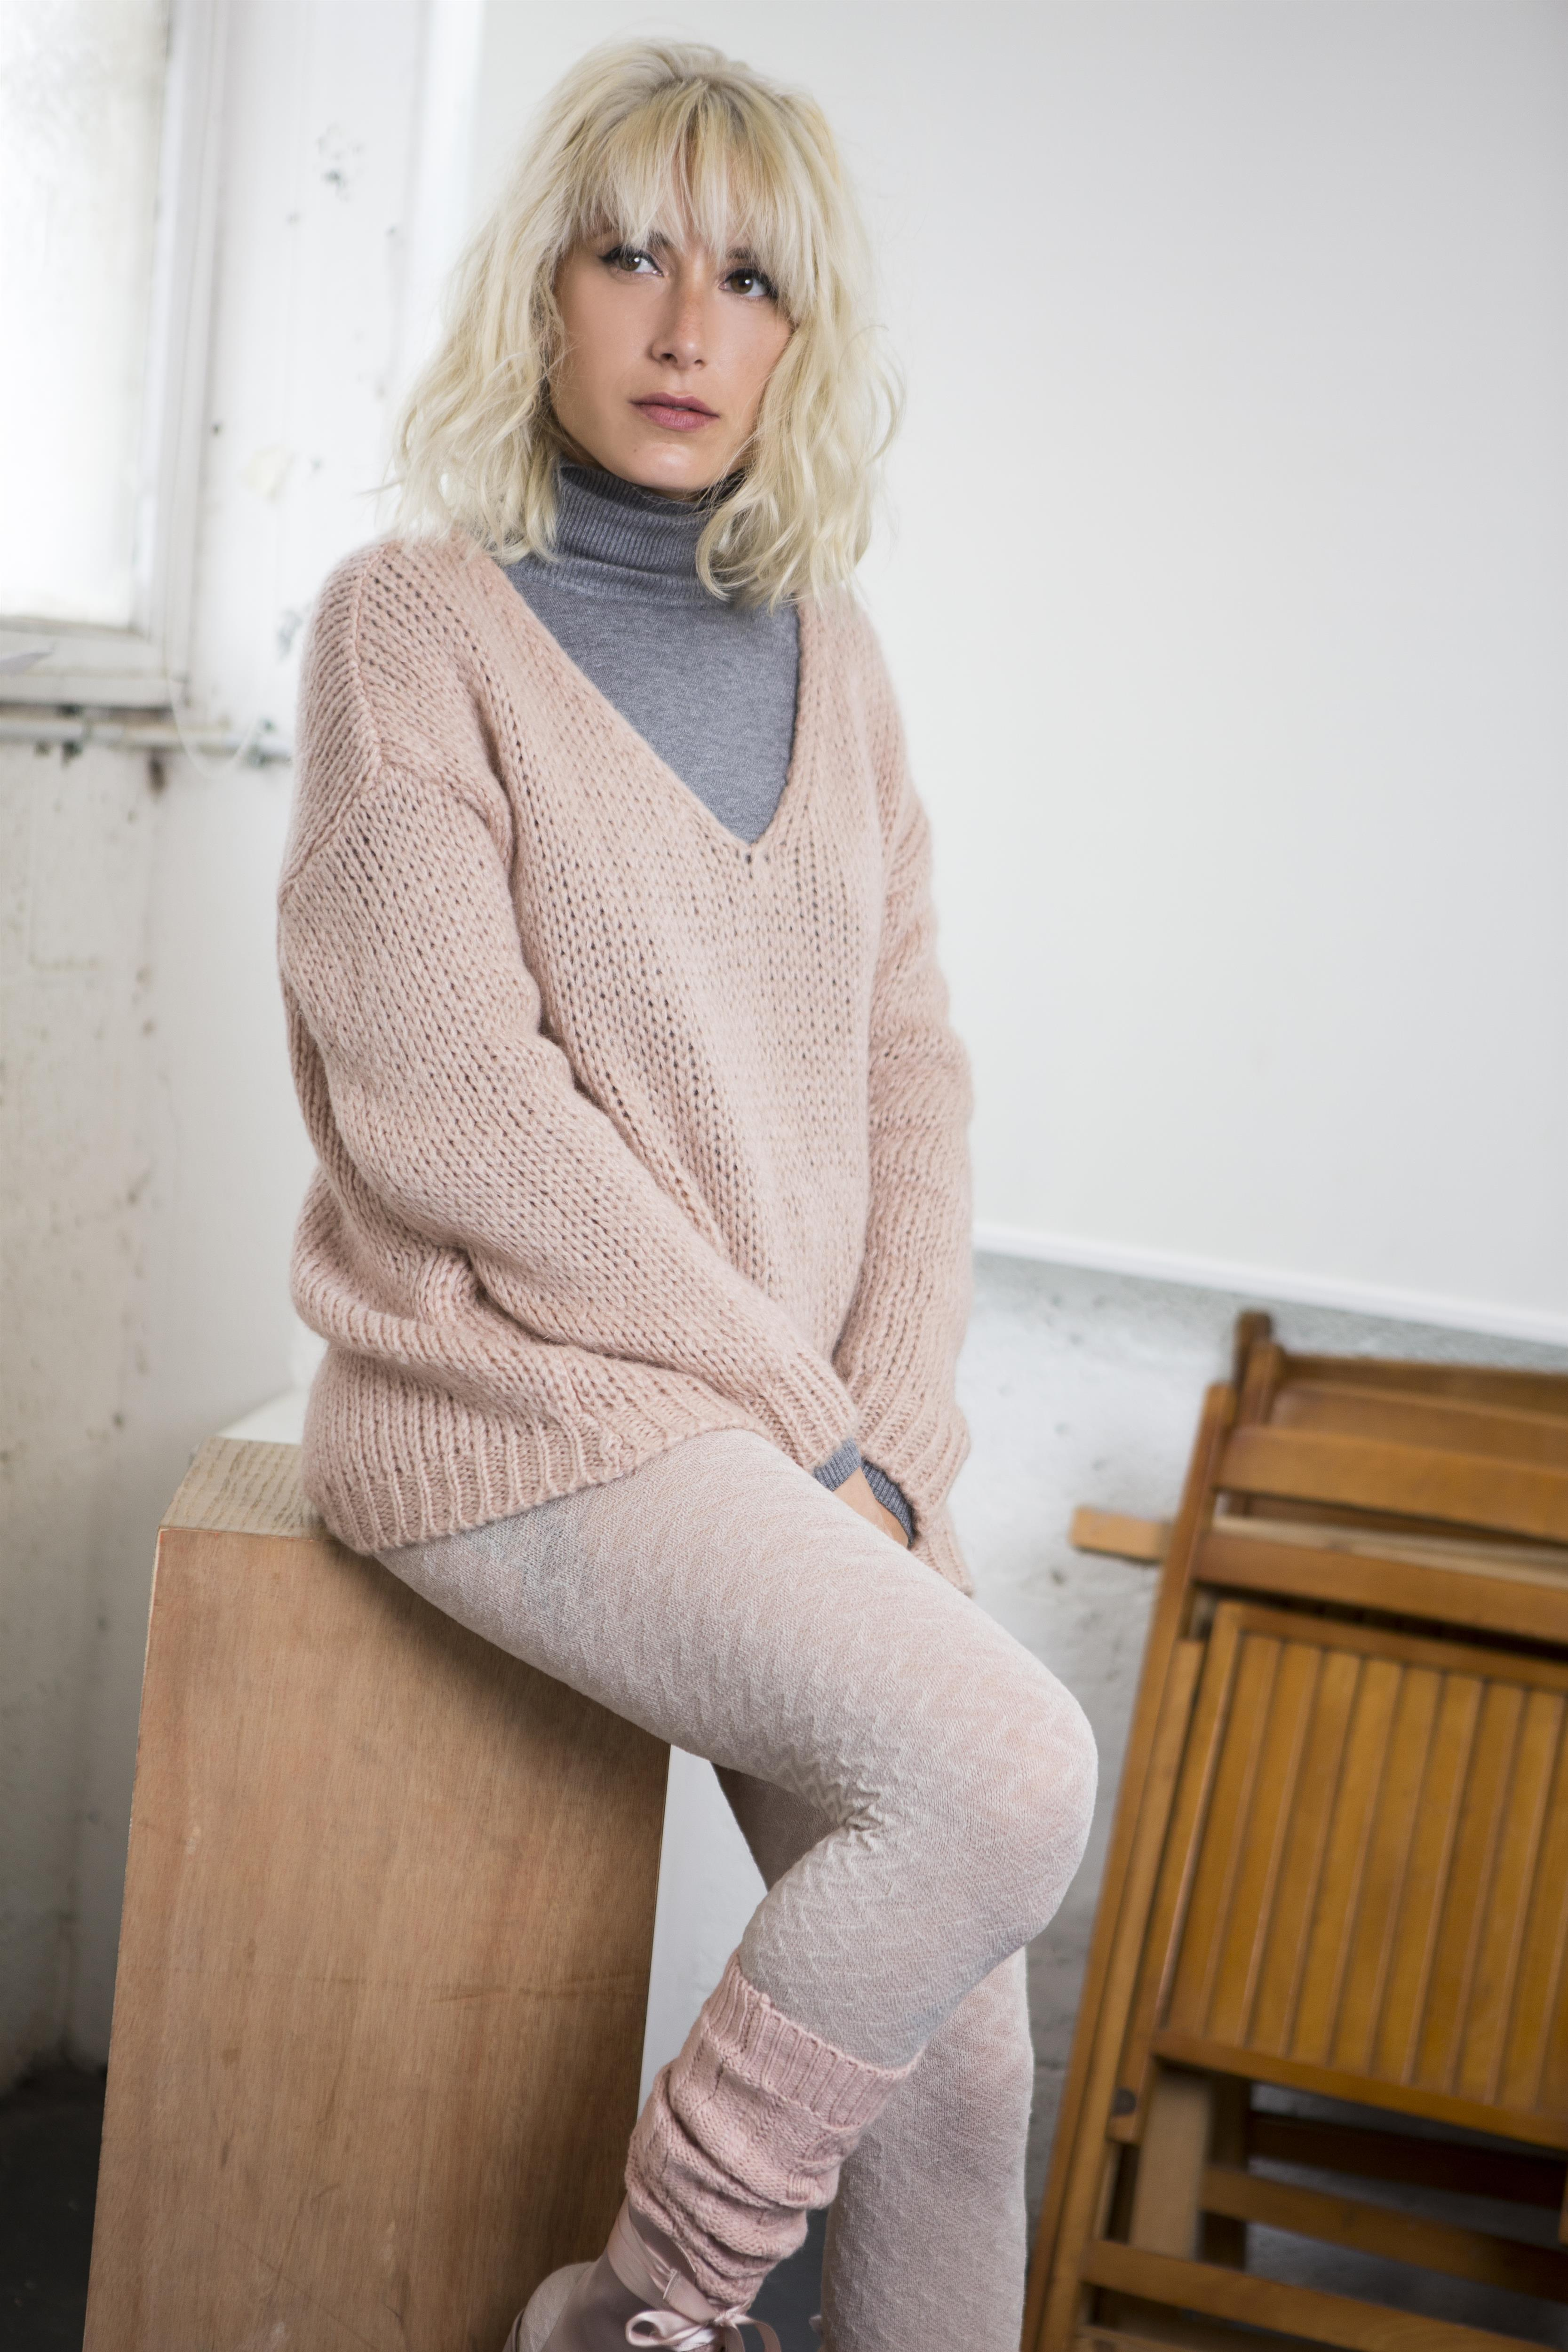 SQ1 fw2017-18 knit 490 nis after discount 320 nis photo Dana Keren